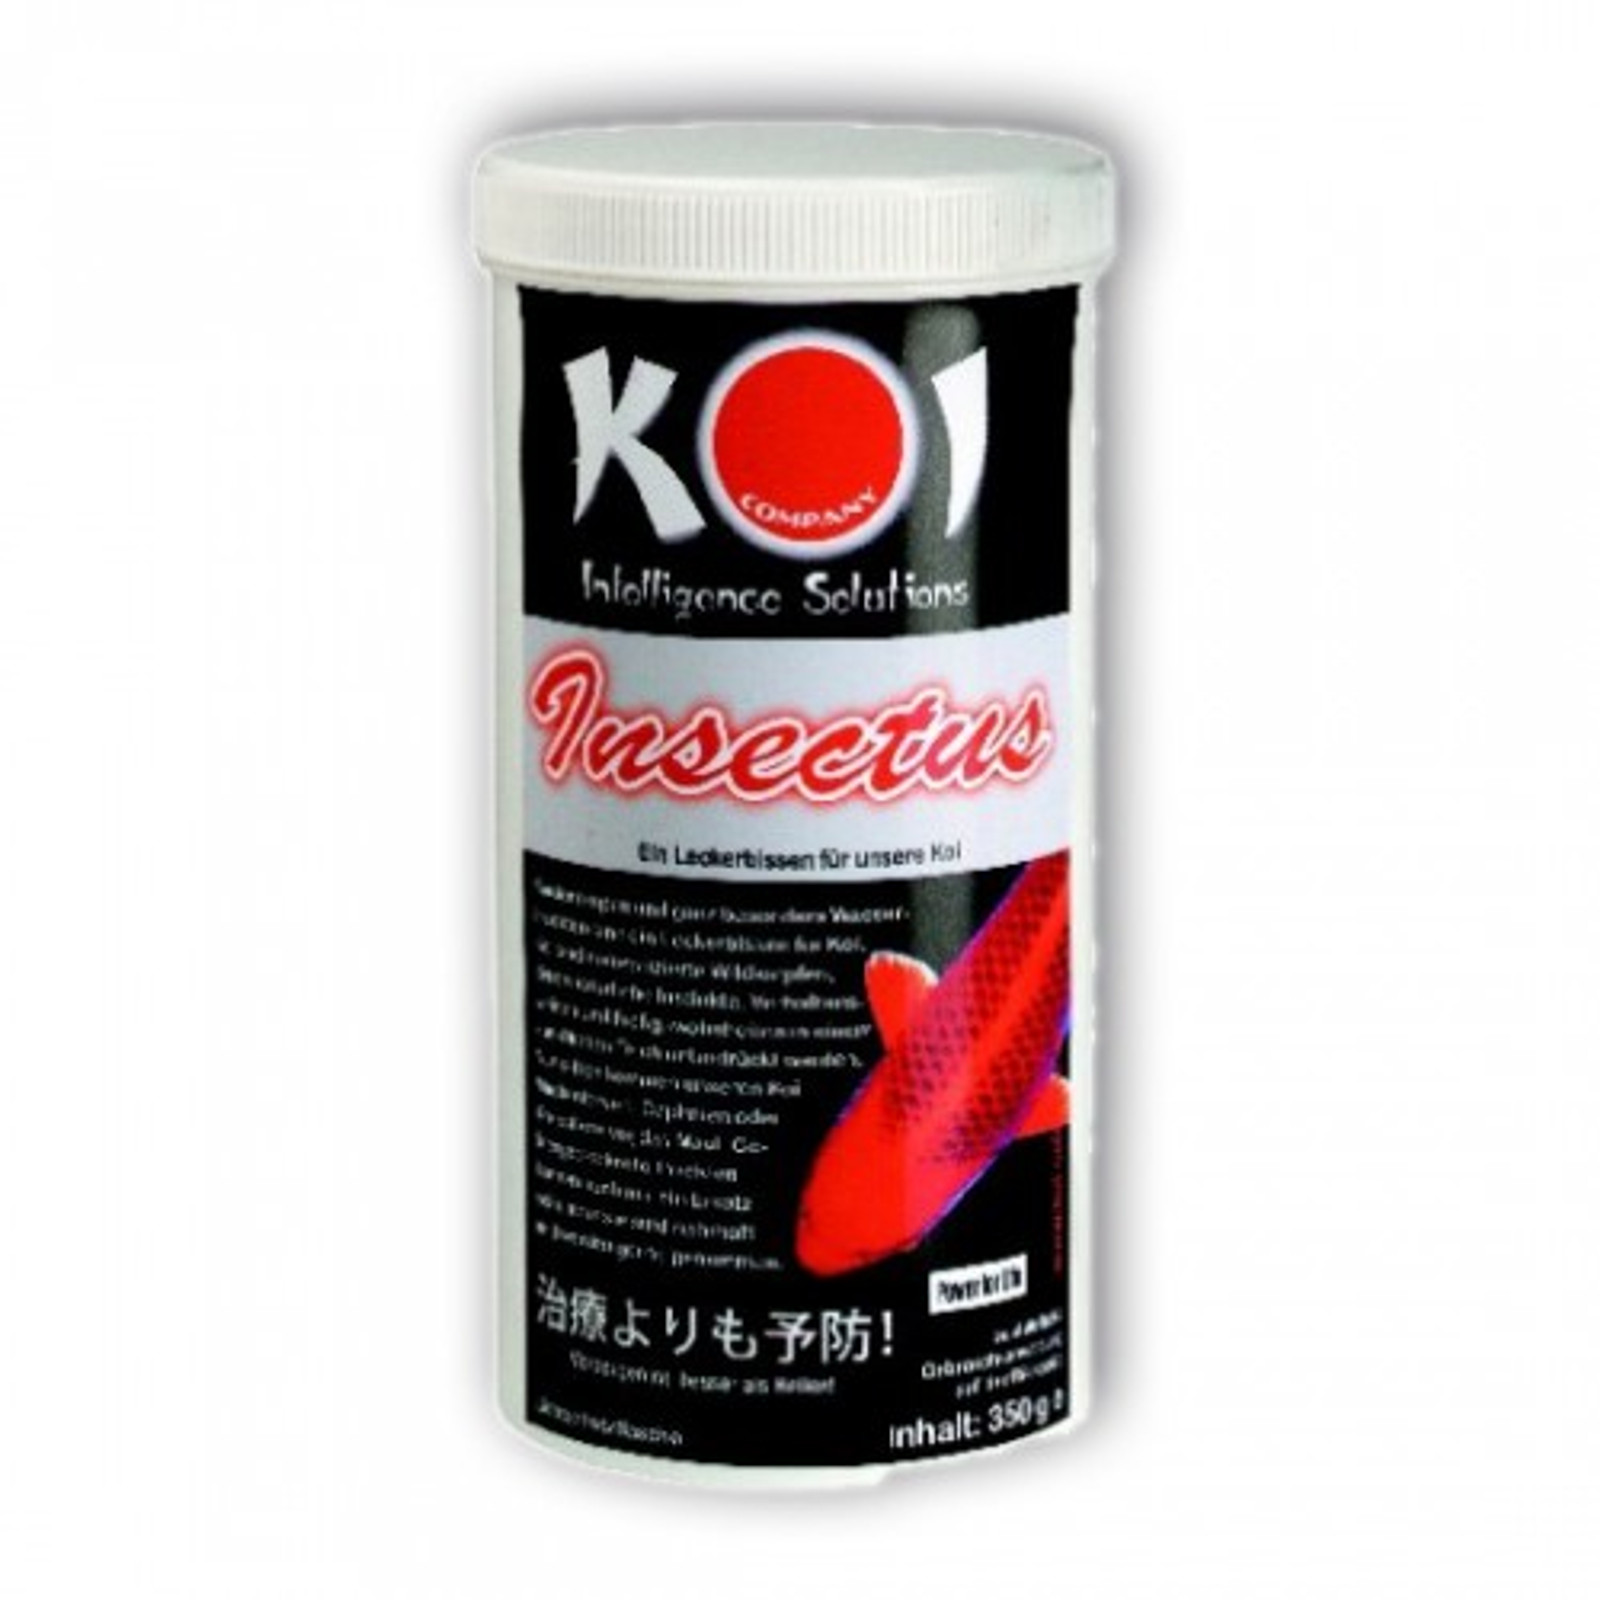 Koi Solutions Insectus 350 g